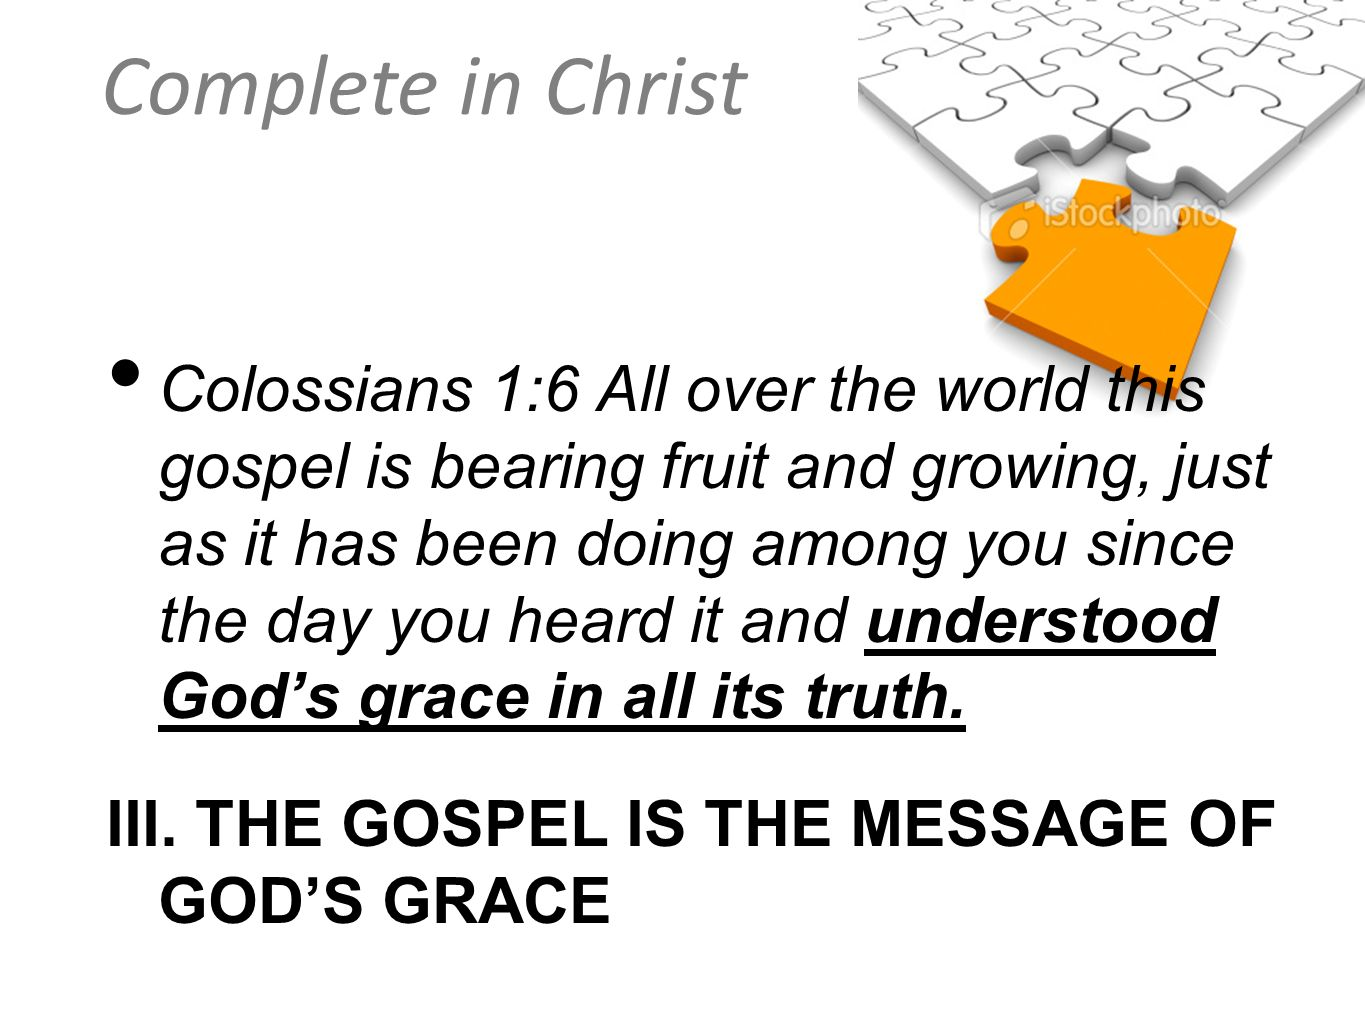 Colossians 1:6 All over the world this gospel is bearing fruit and growing, just as it has been doing among you since the day you heard it and understood God's grace in all its truth.